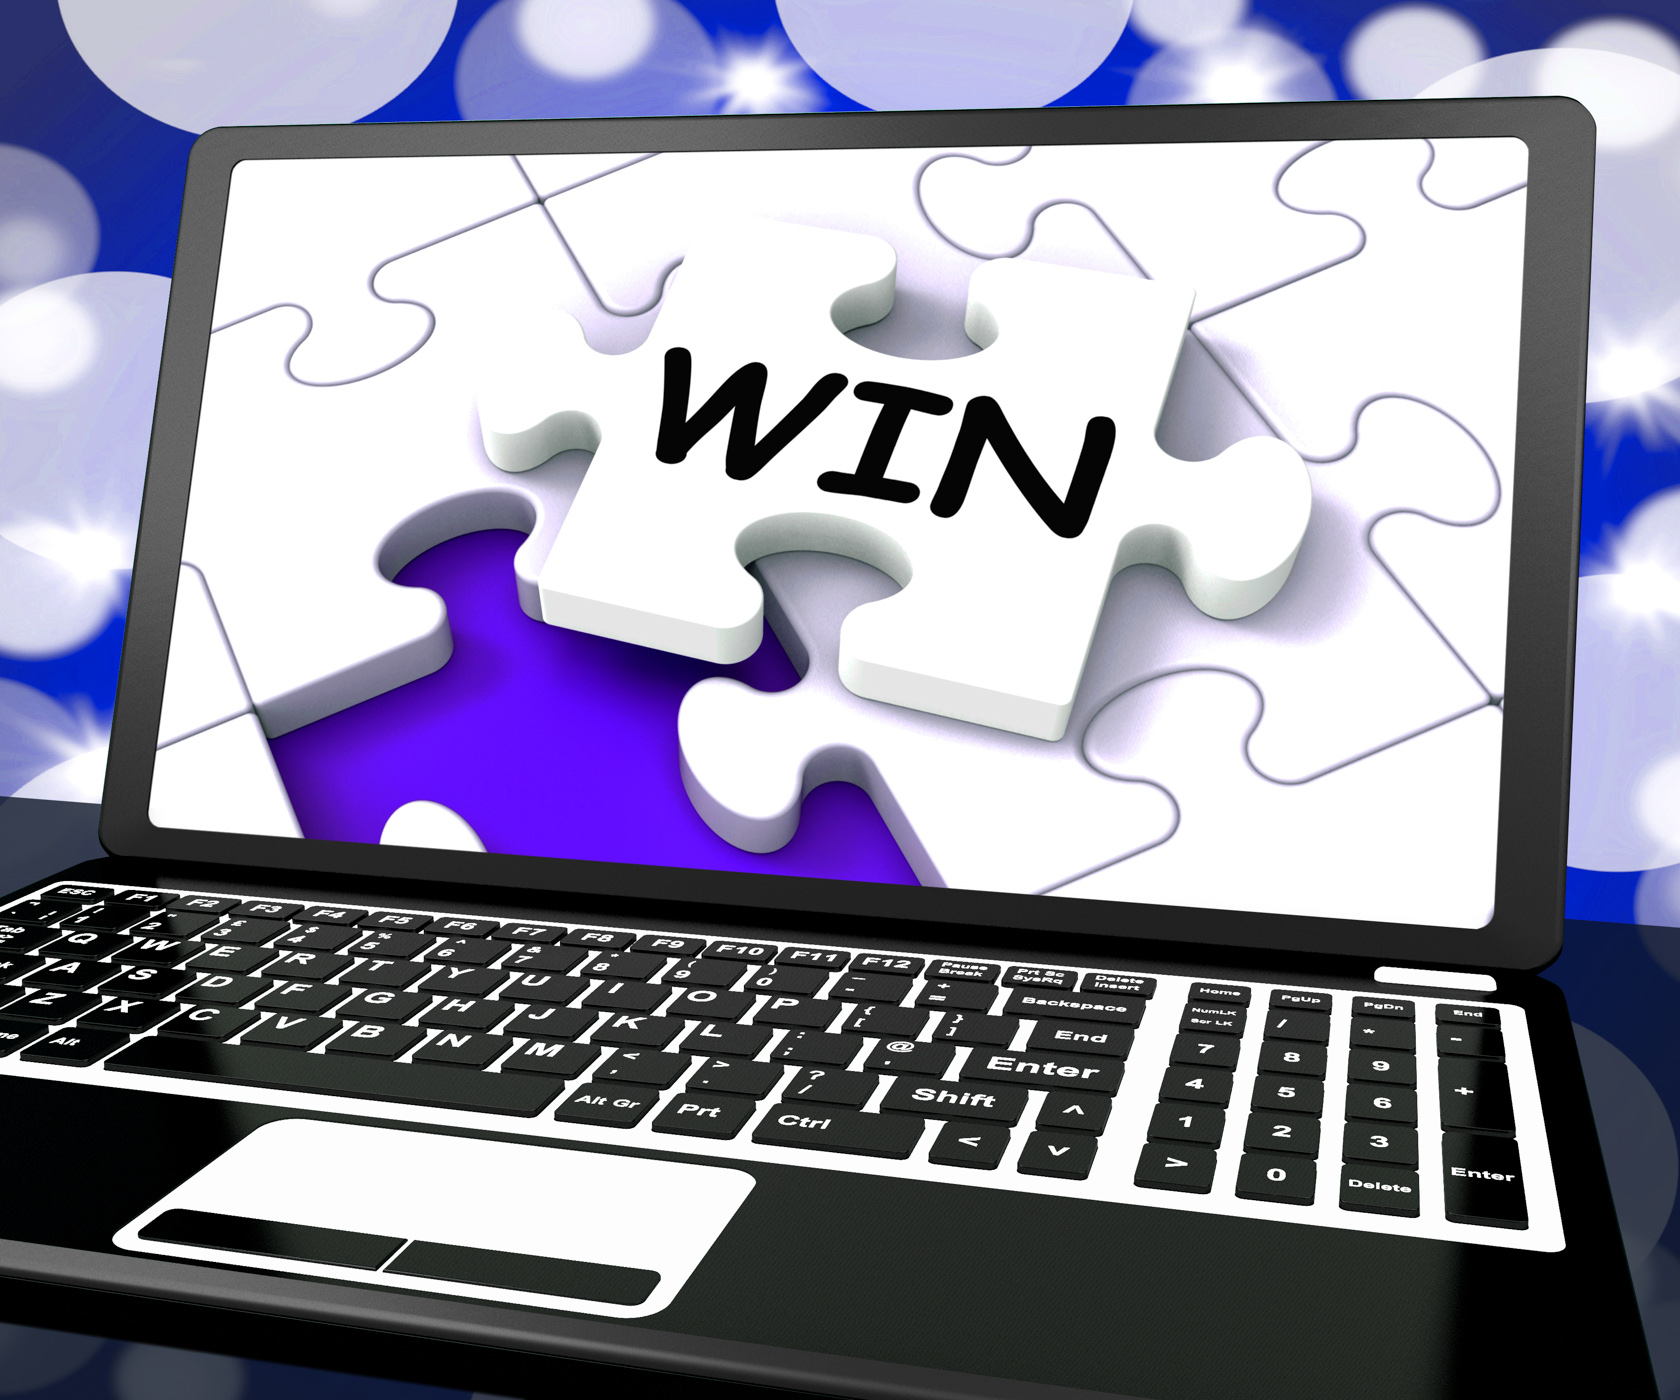 Win puzzle on laptop shows victory photo